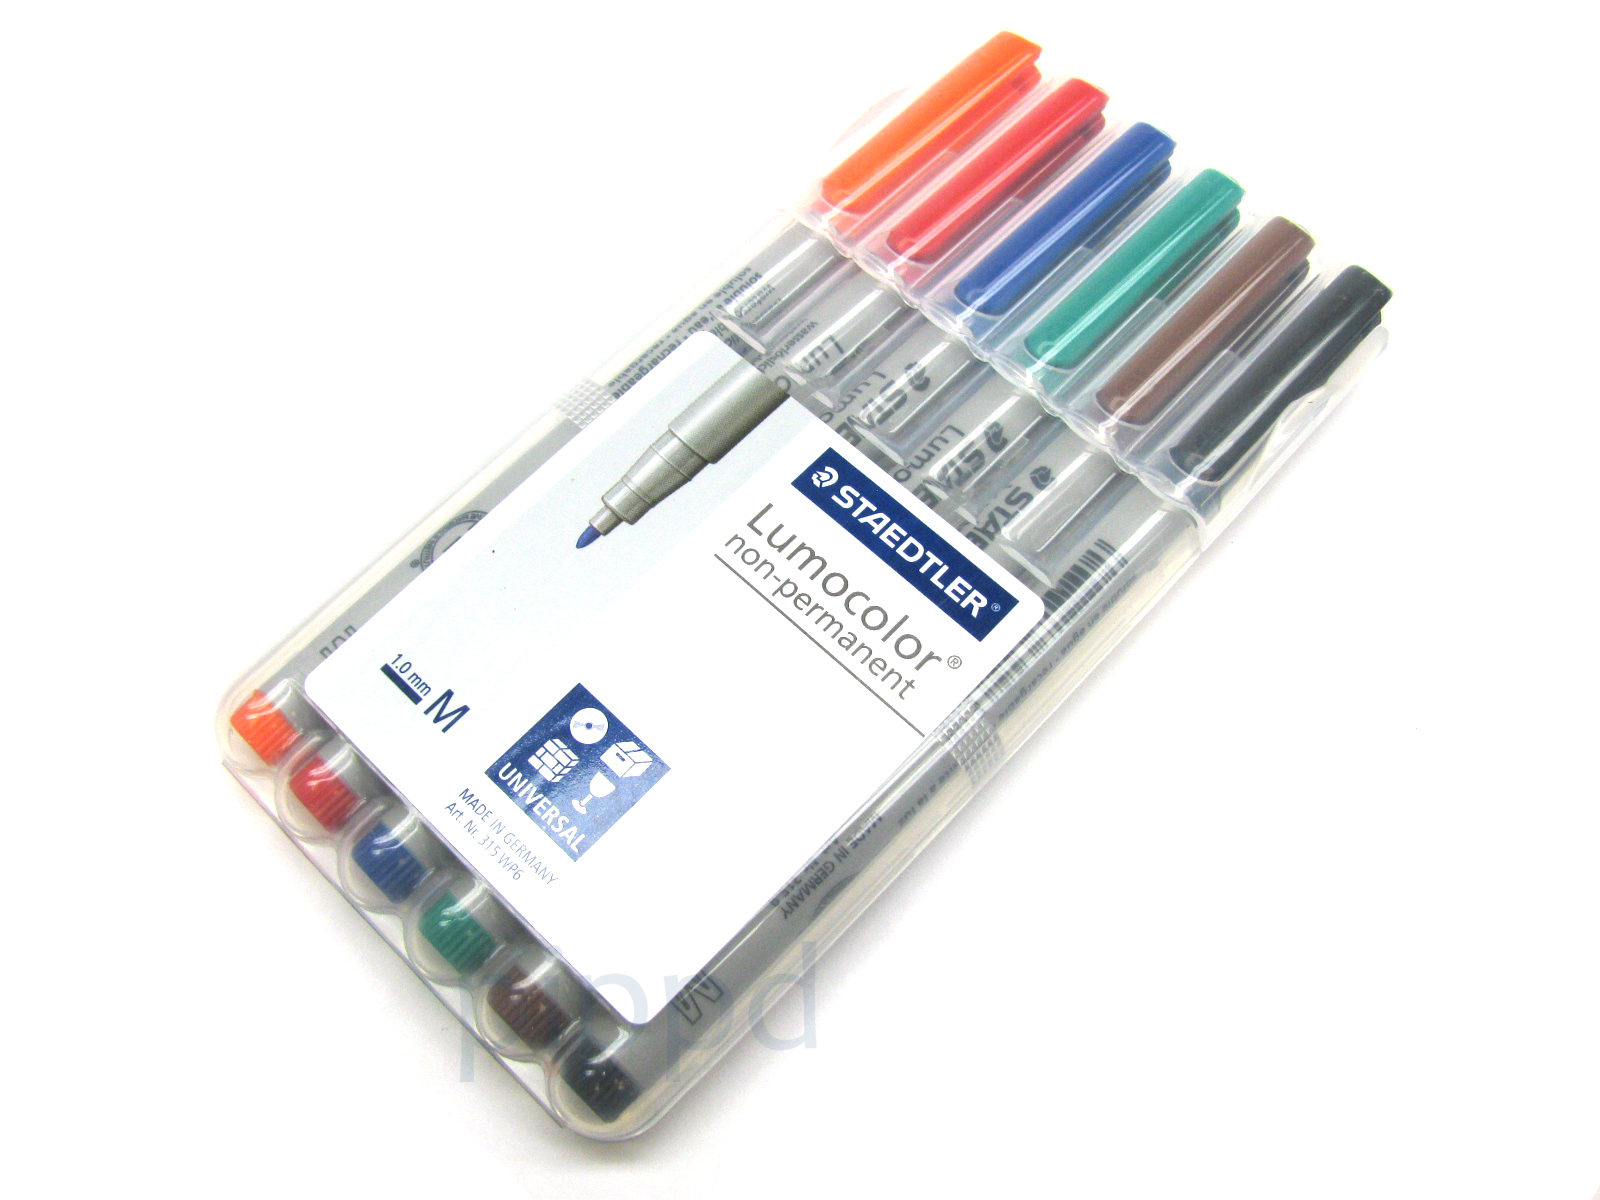 6-Pack Mat Marking Pen  Staedtler Lumocolor Non-Permanent Water Soluble  Markers 4d404be03b